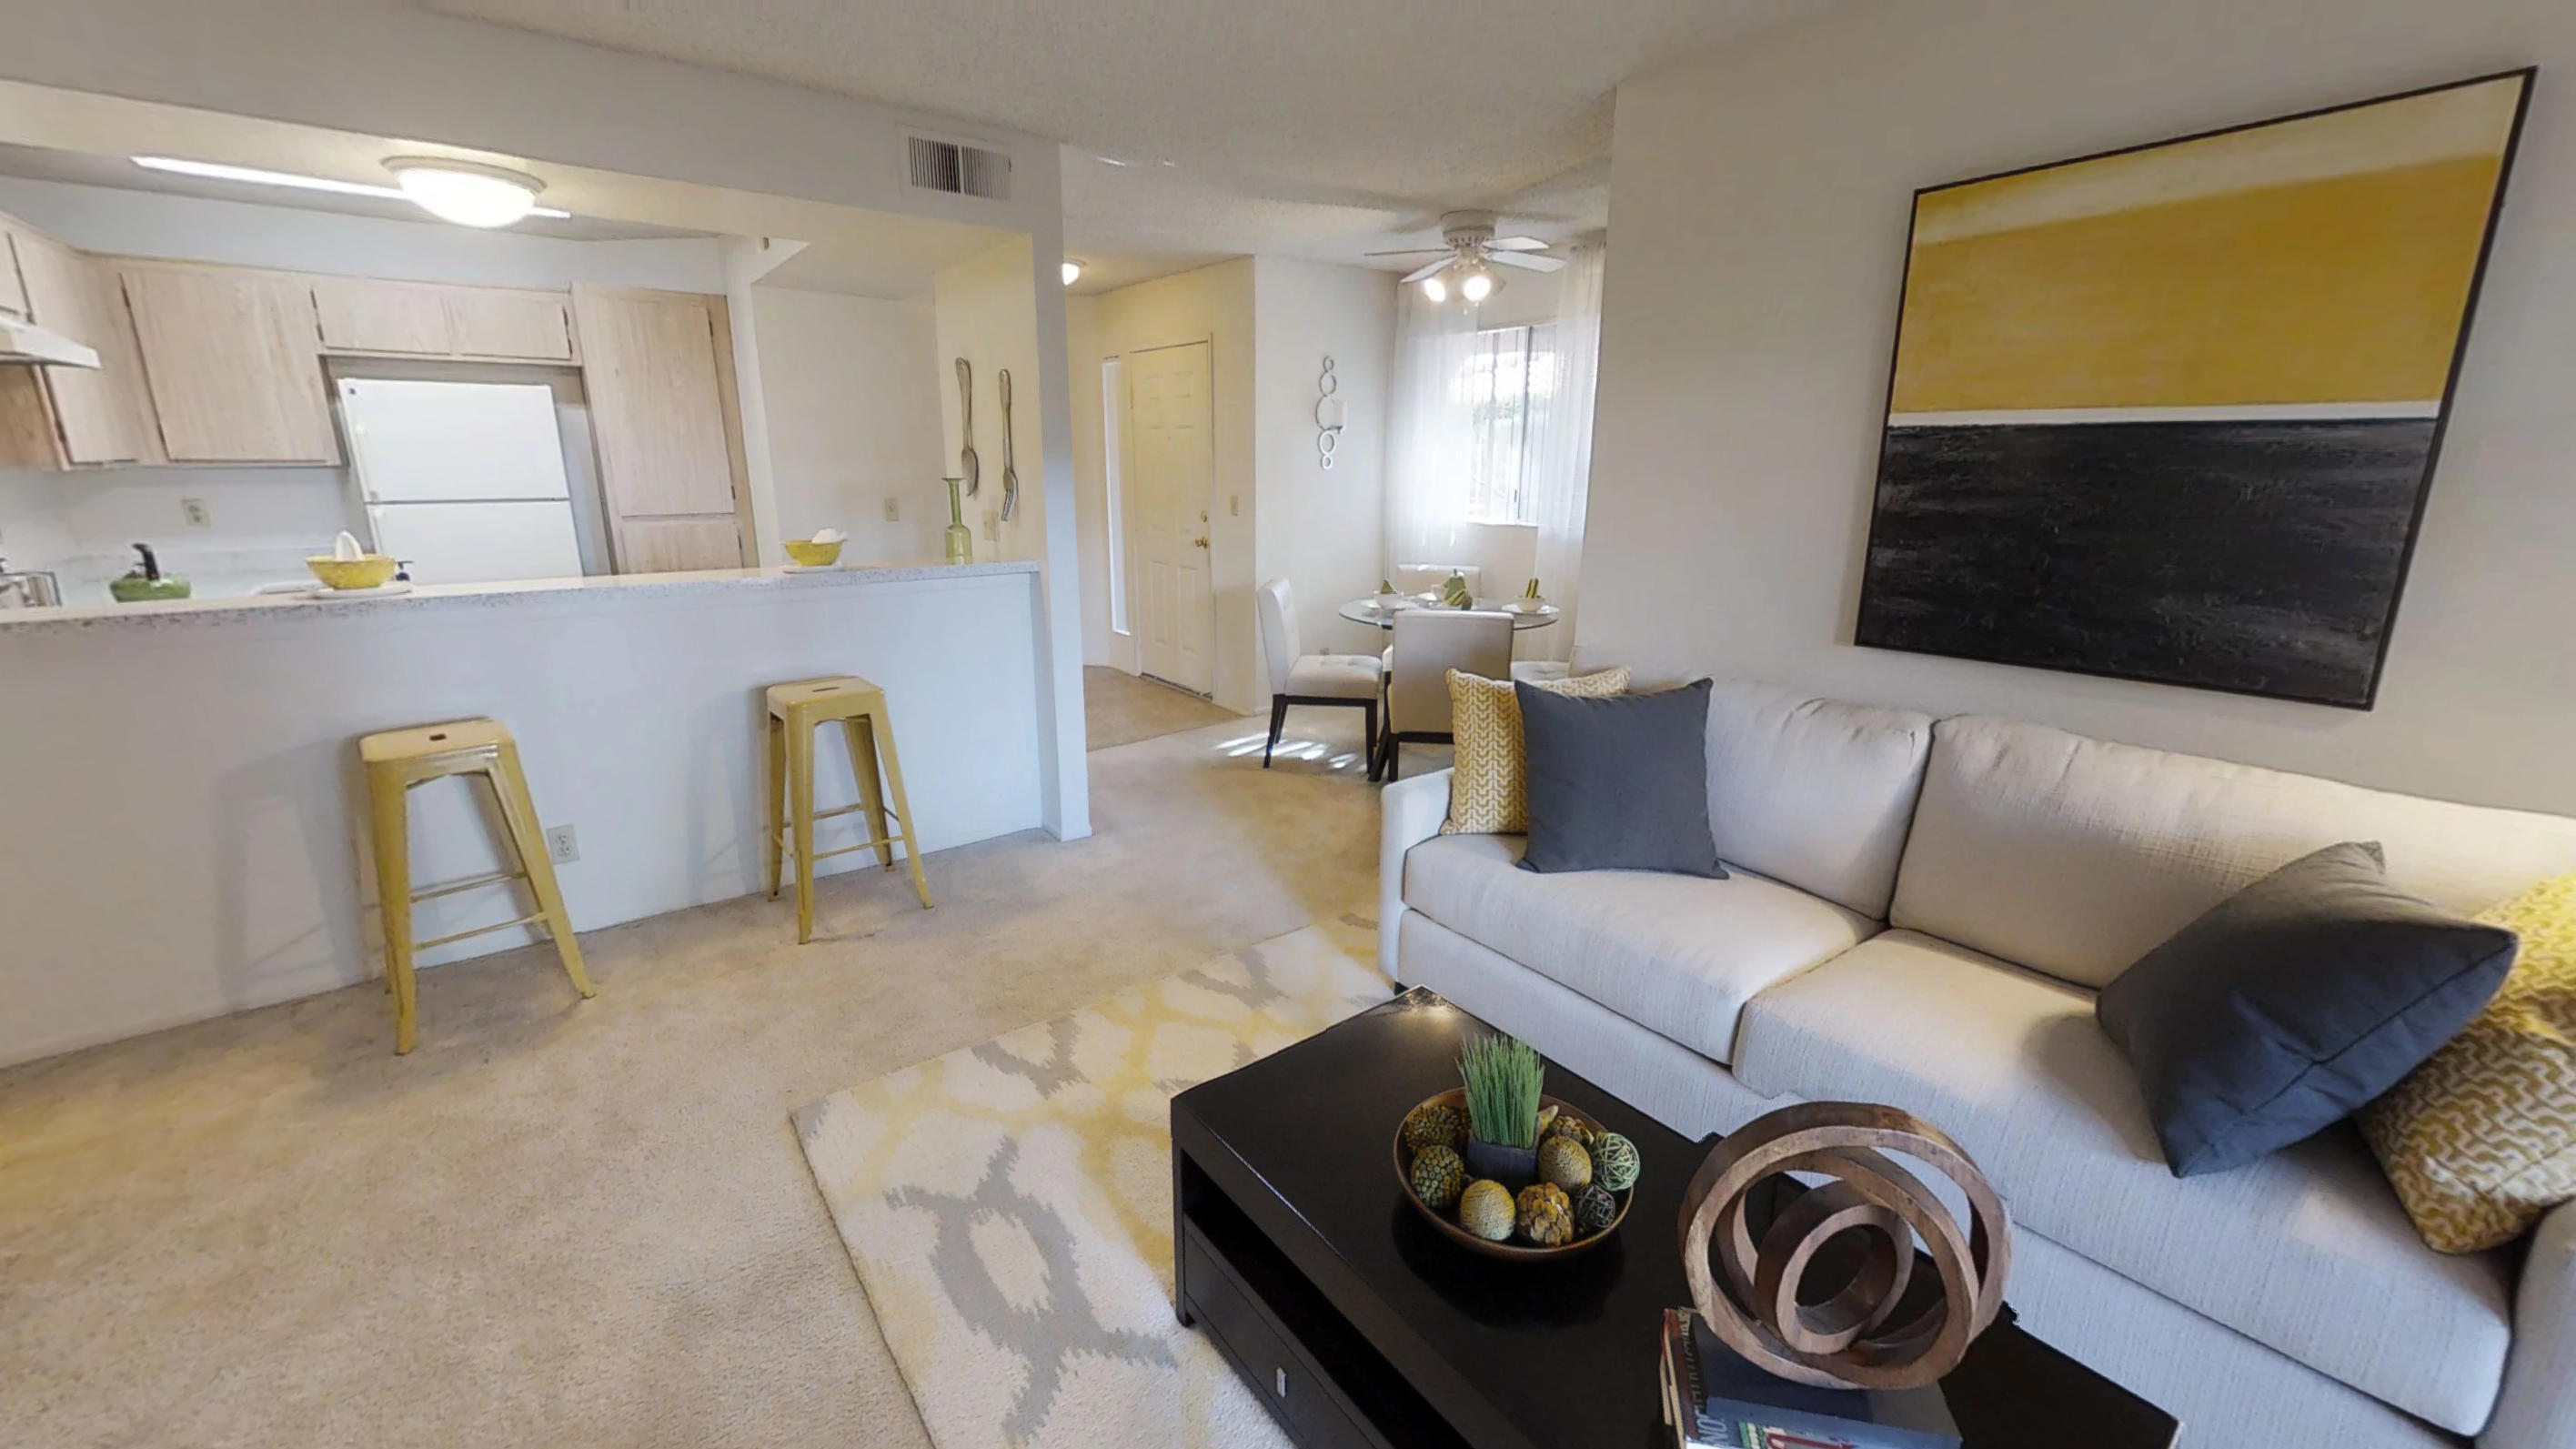 2 BD/2 BA Model 1008 sq ft